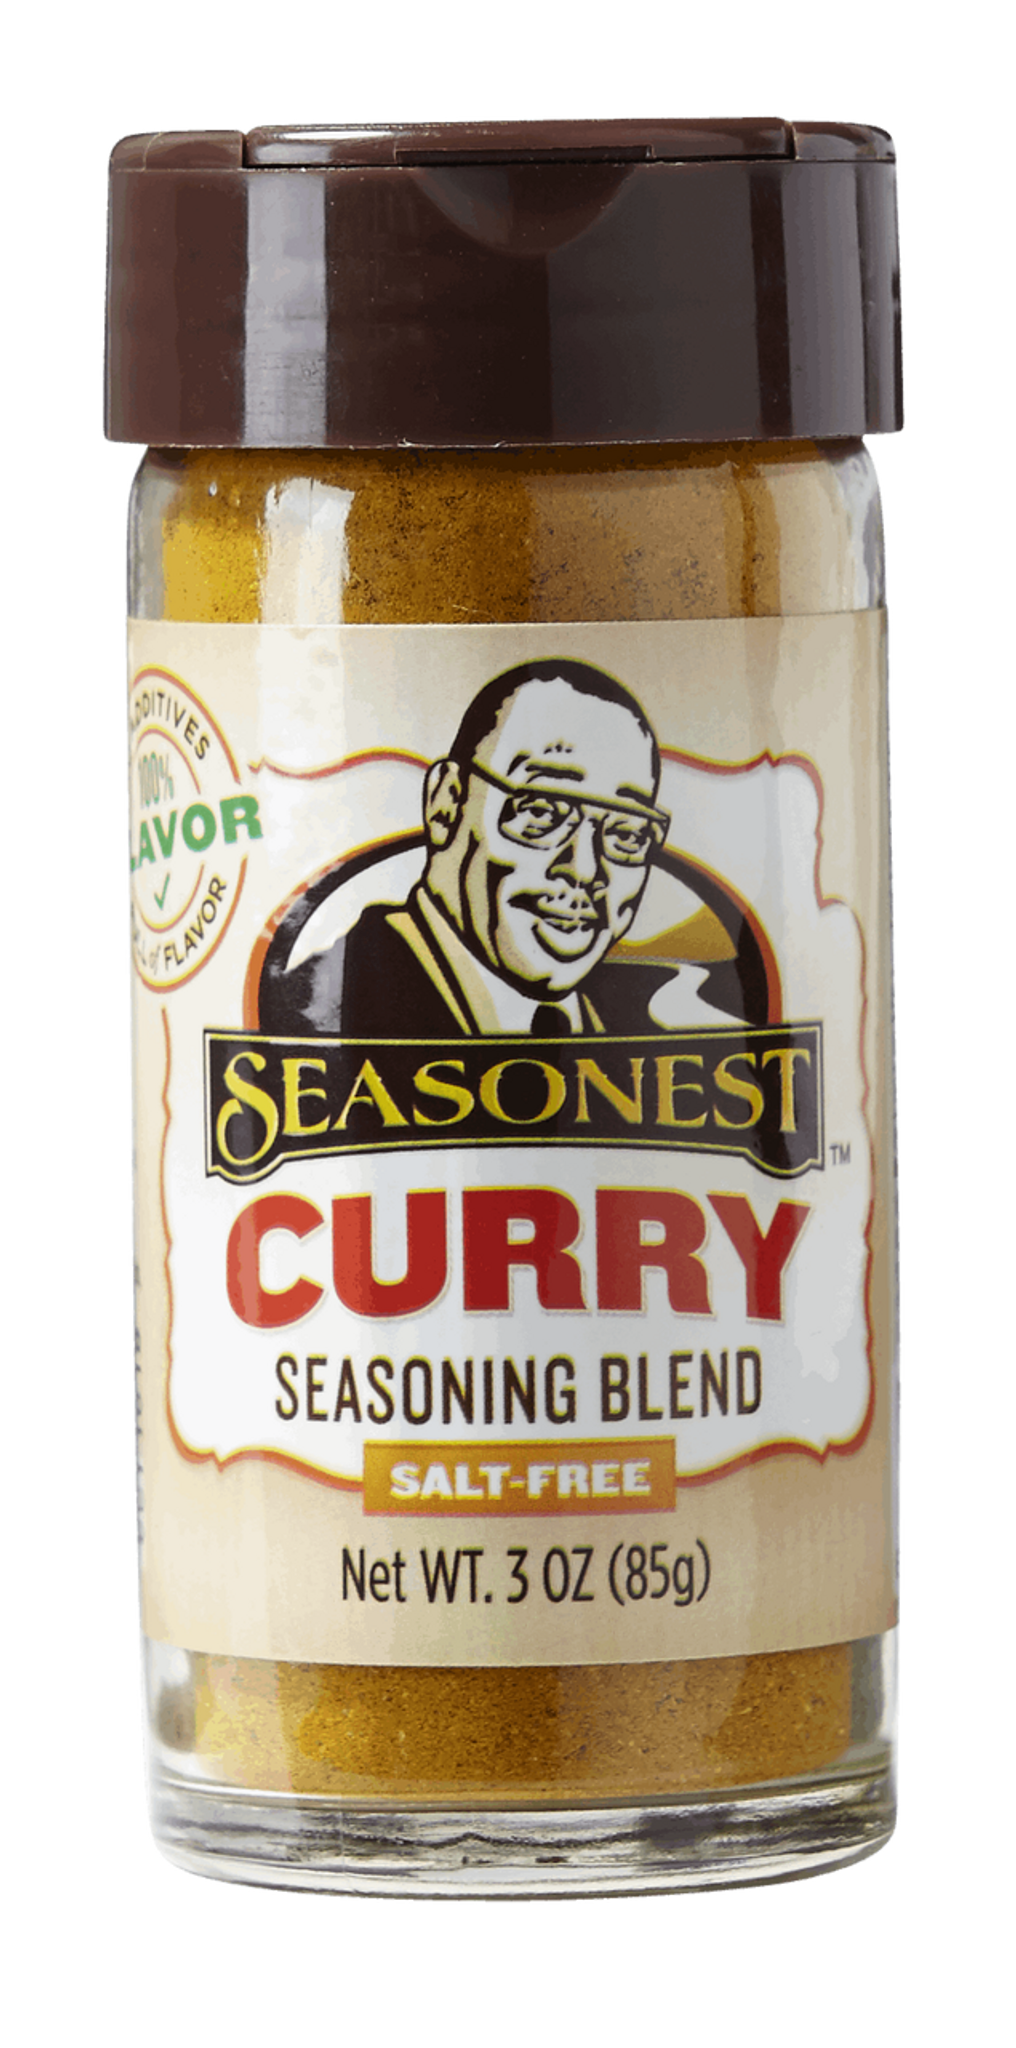 Seasonest Curry Indian Seasoning Blend